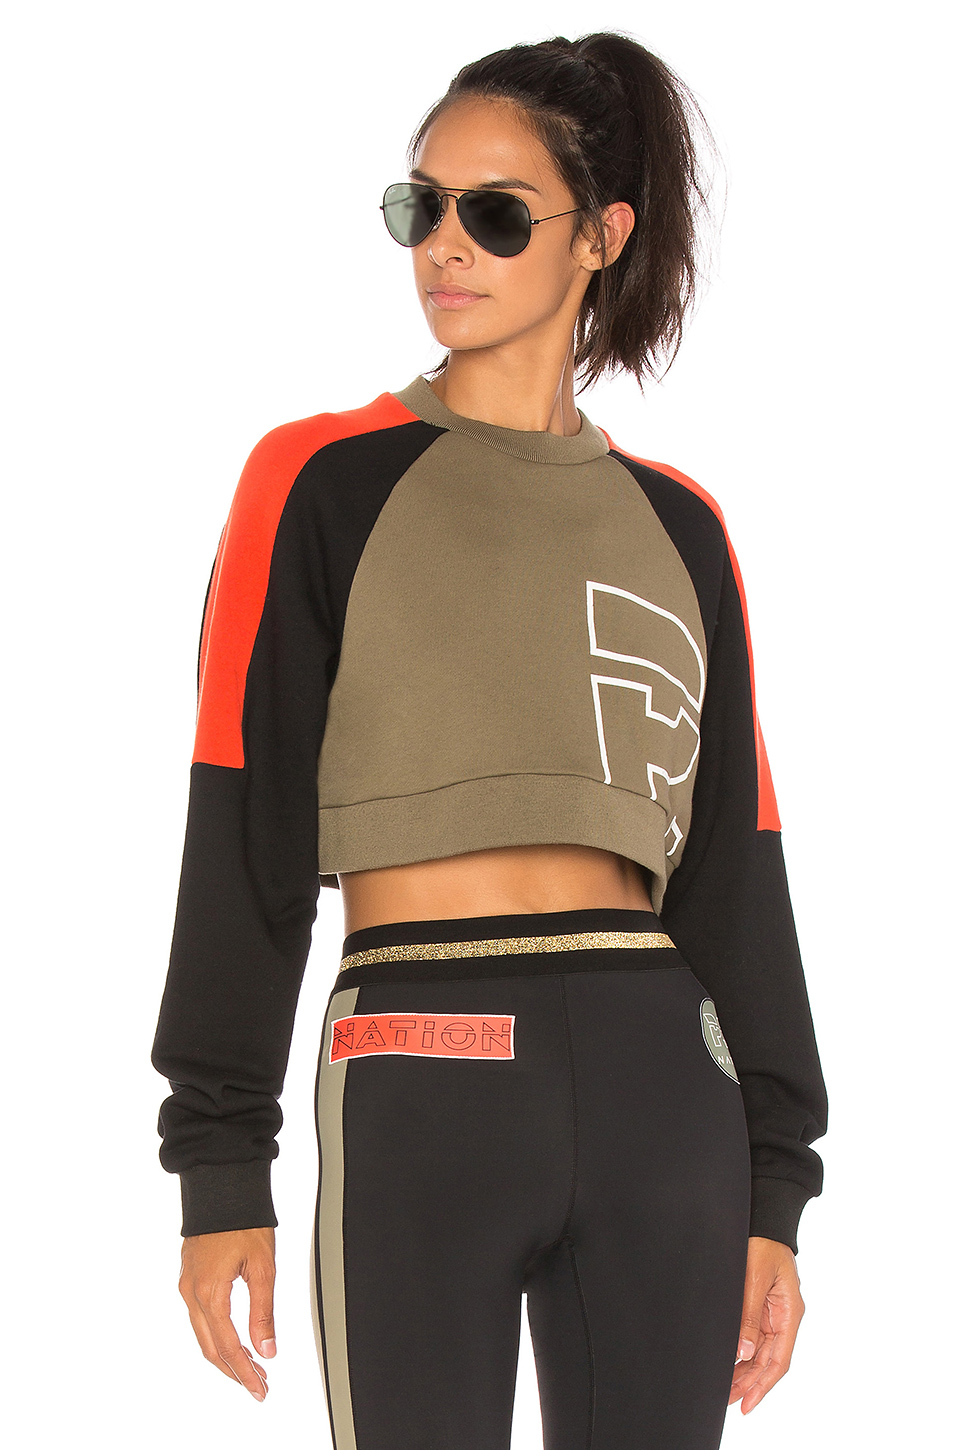 P.E Nation All Rounder Sweatshirt in Multi